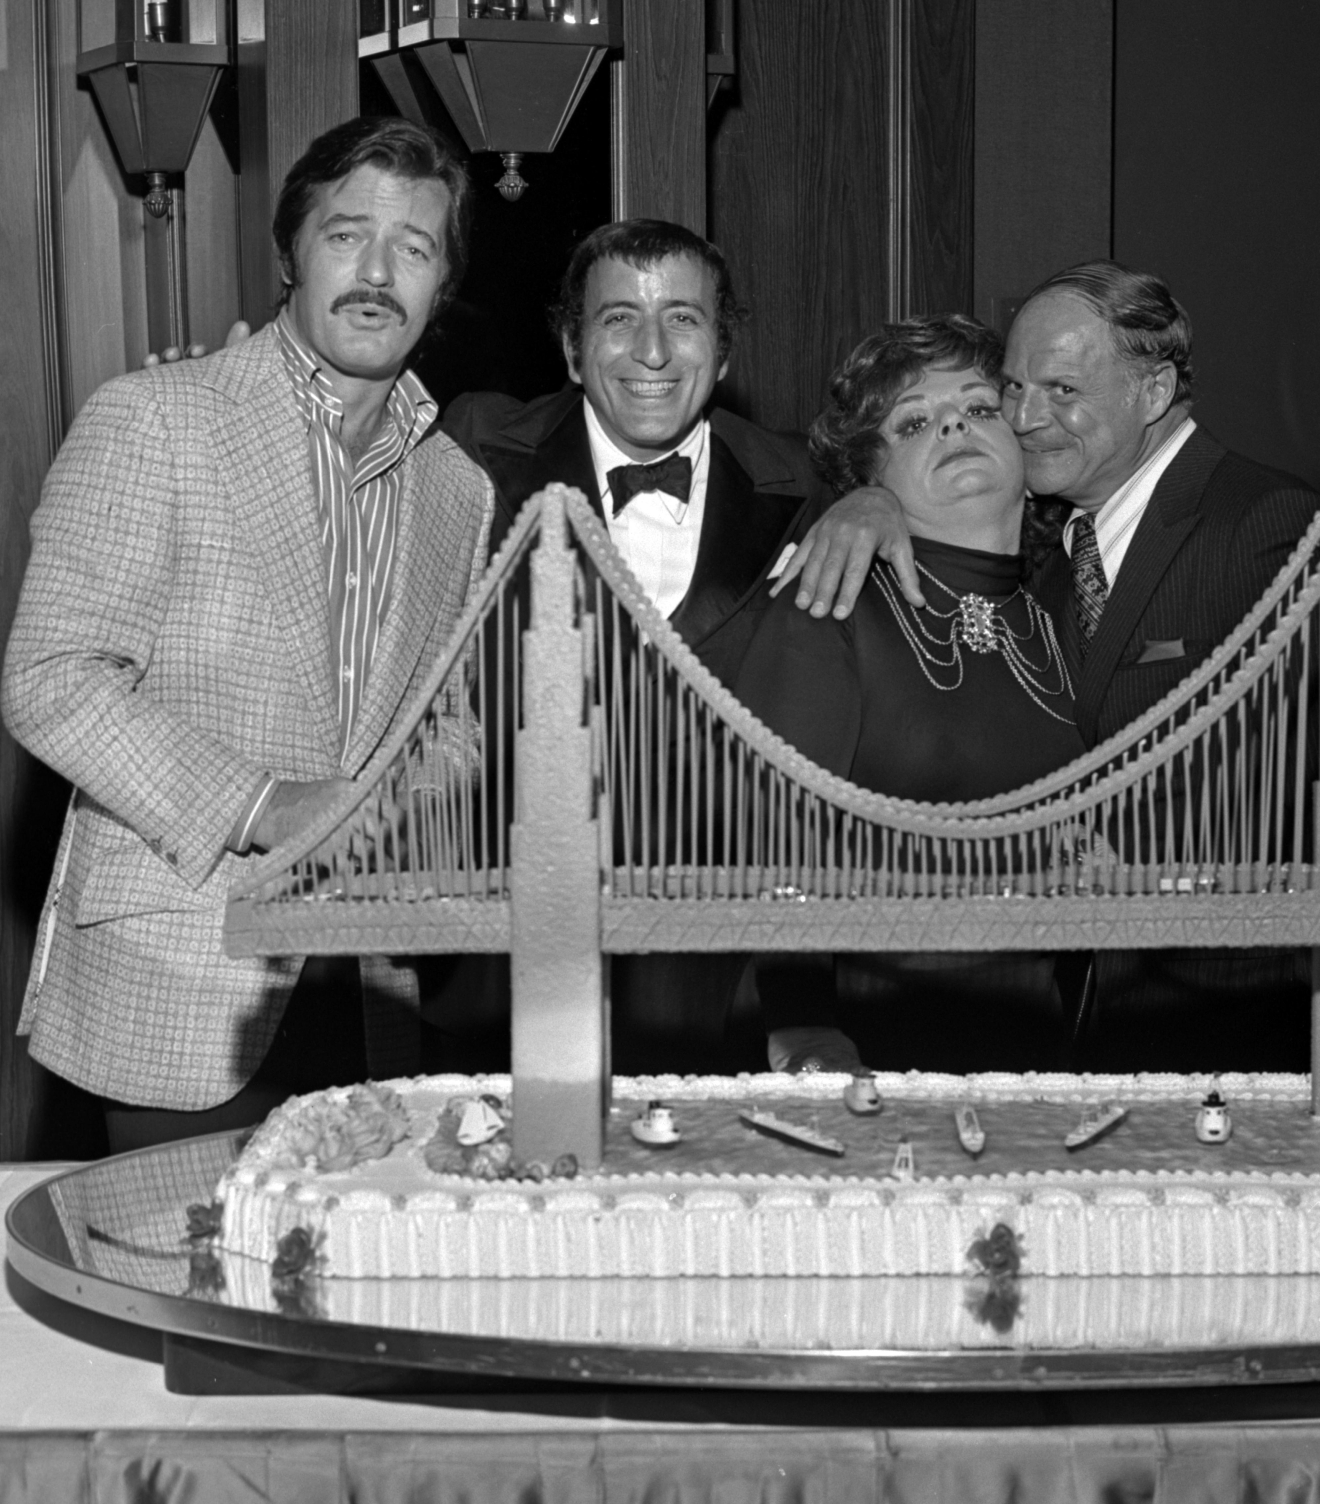 Robert Goulet, Tony Bennett,Totie Fields and Don Rickles at Tony Bennett opening night party at the Riviera on Oct. 26, 1971. [Las Vegas News Bureau file photo]